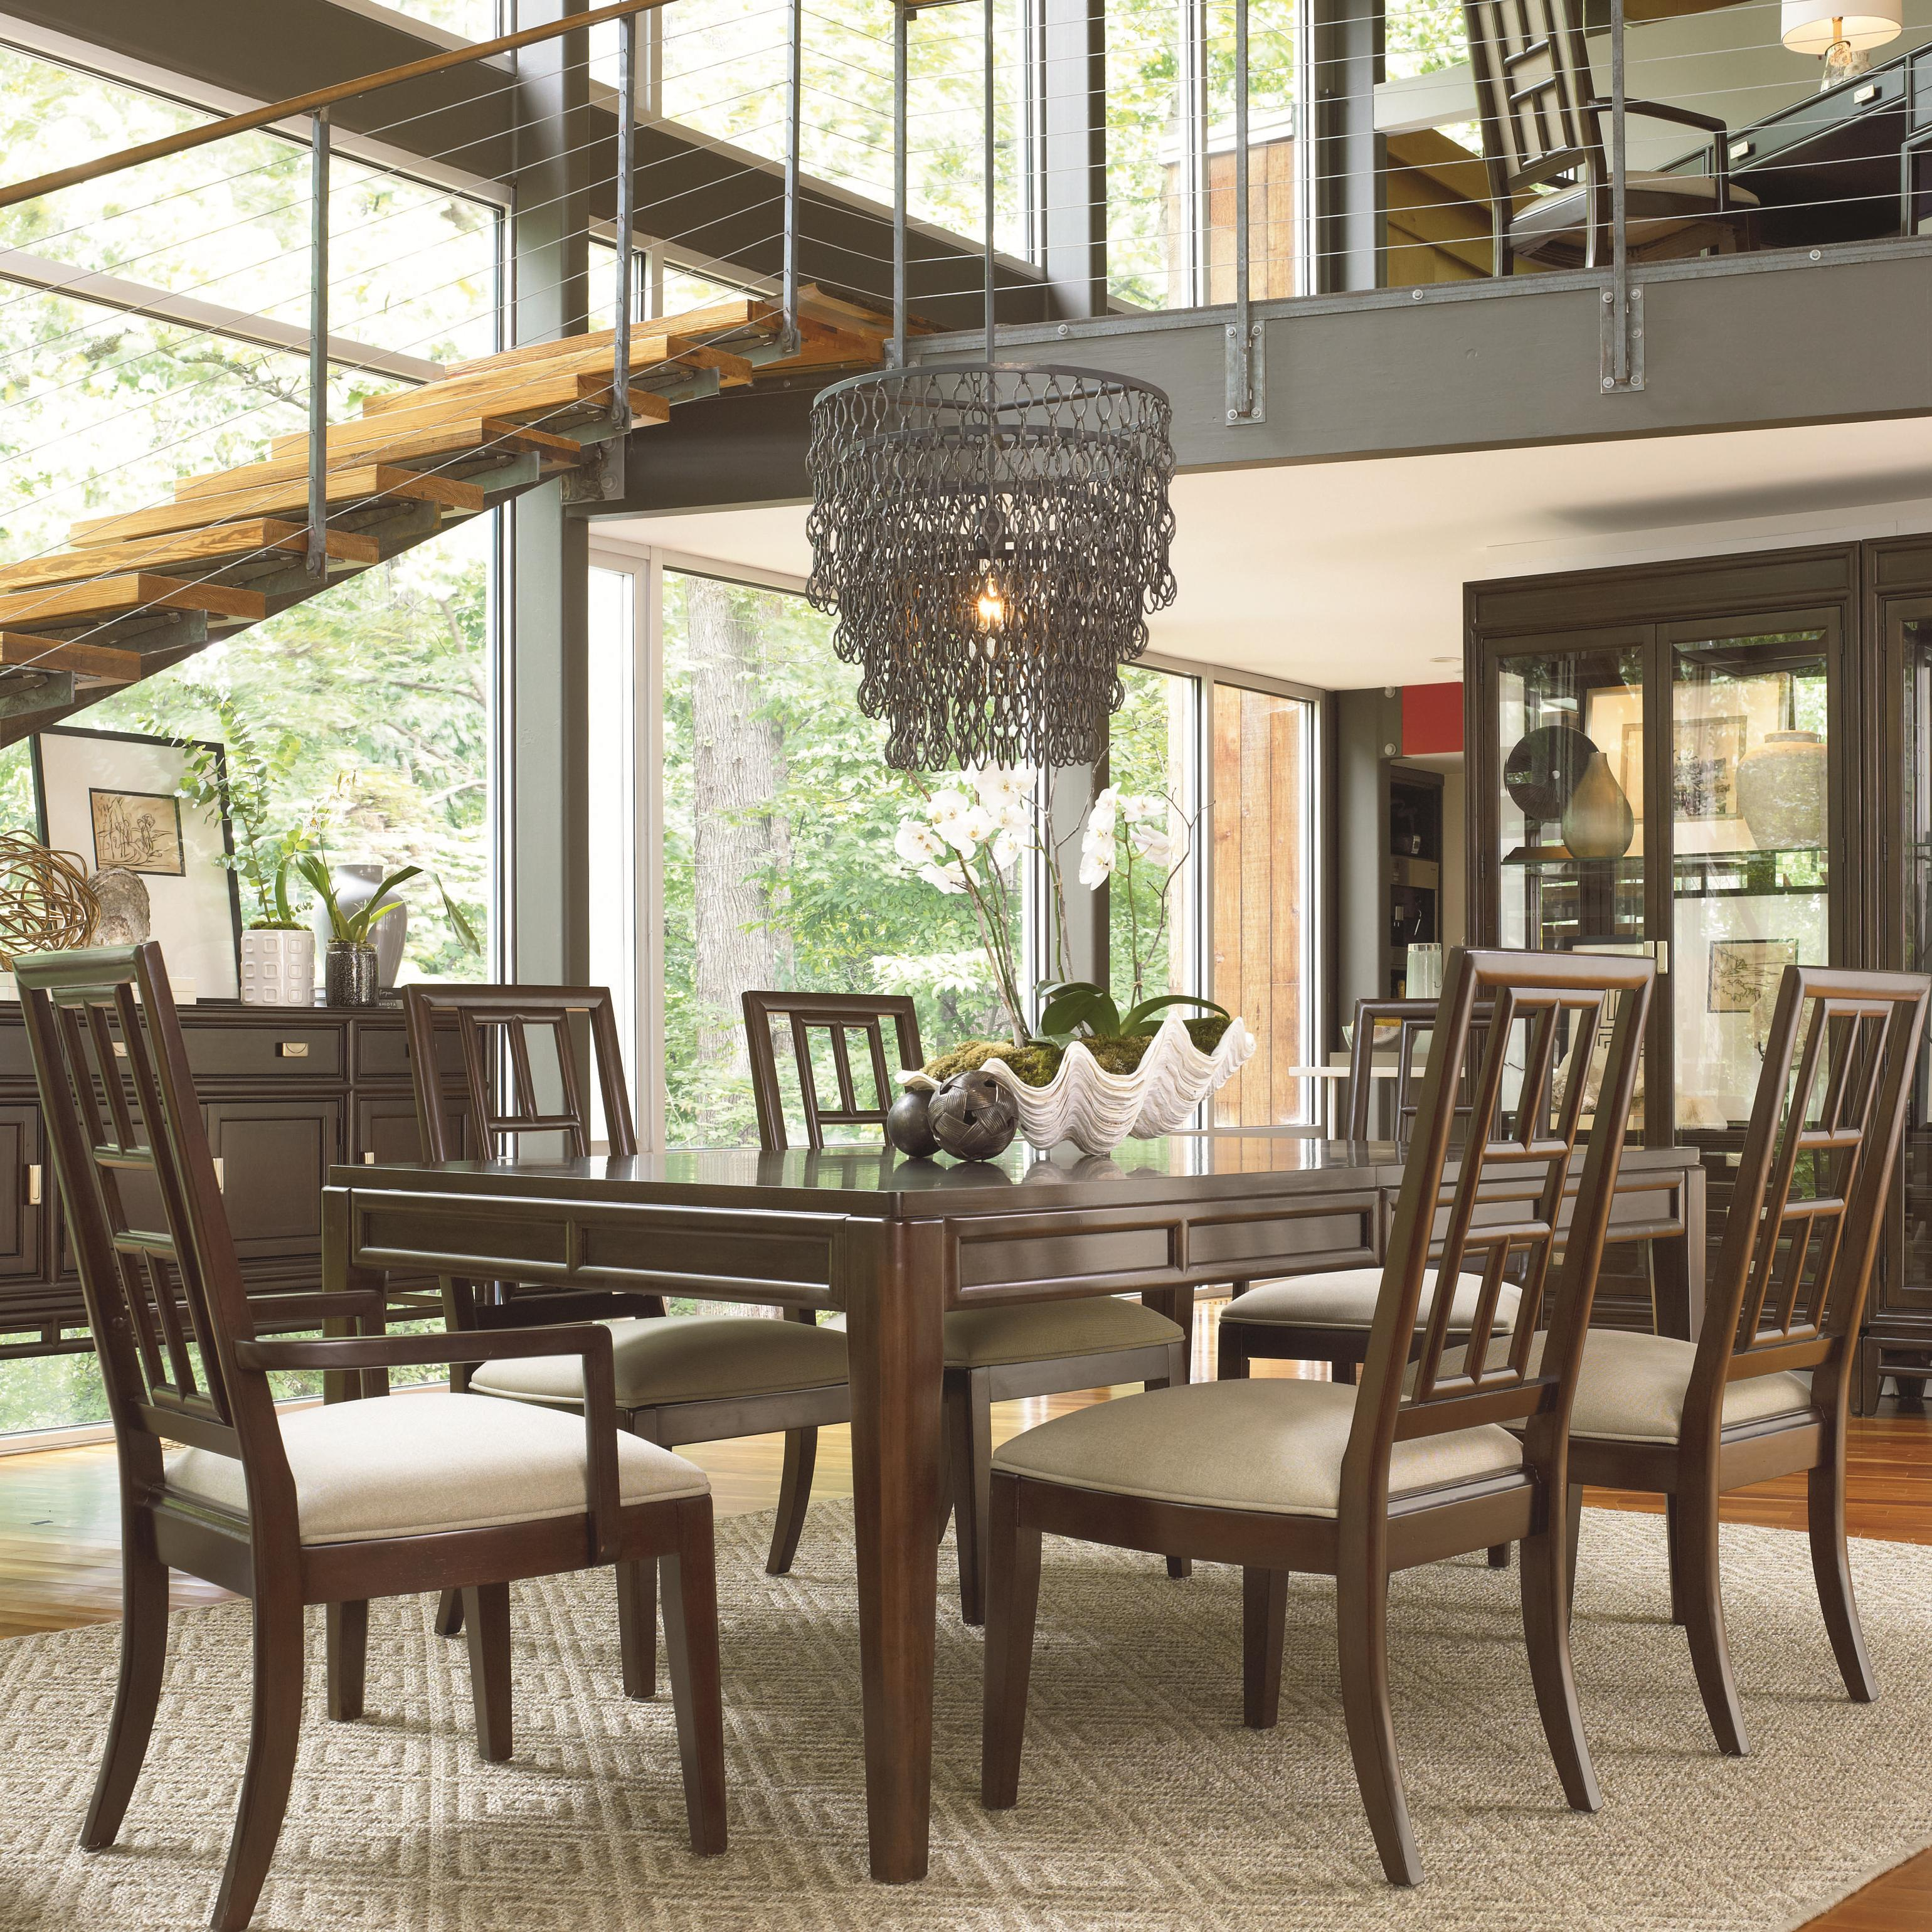 Thomasville Lantau 7 Piece Dining Table and Chair Set